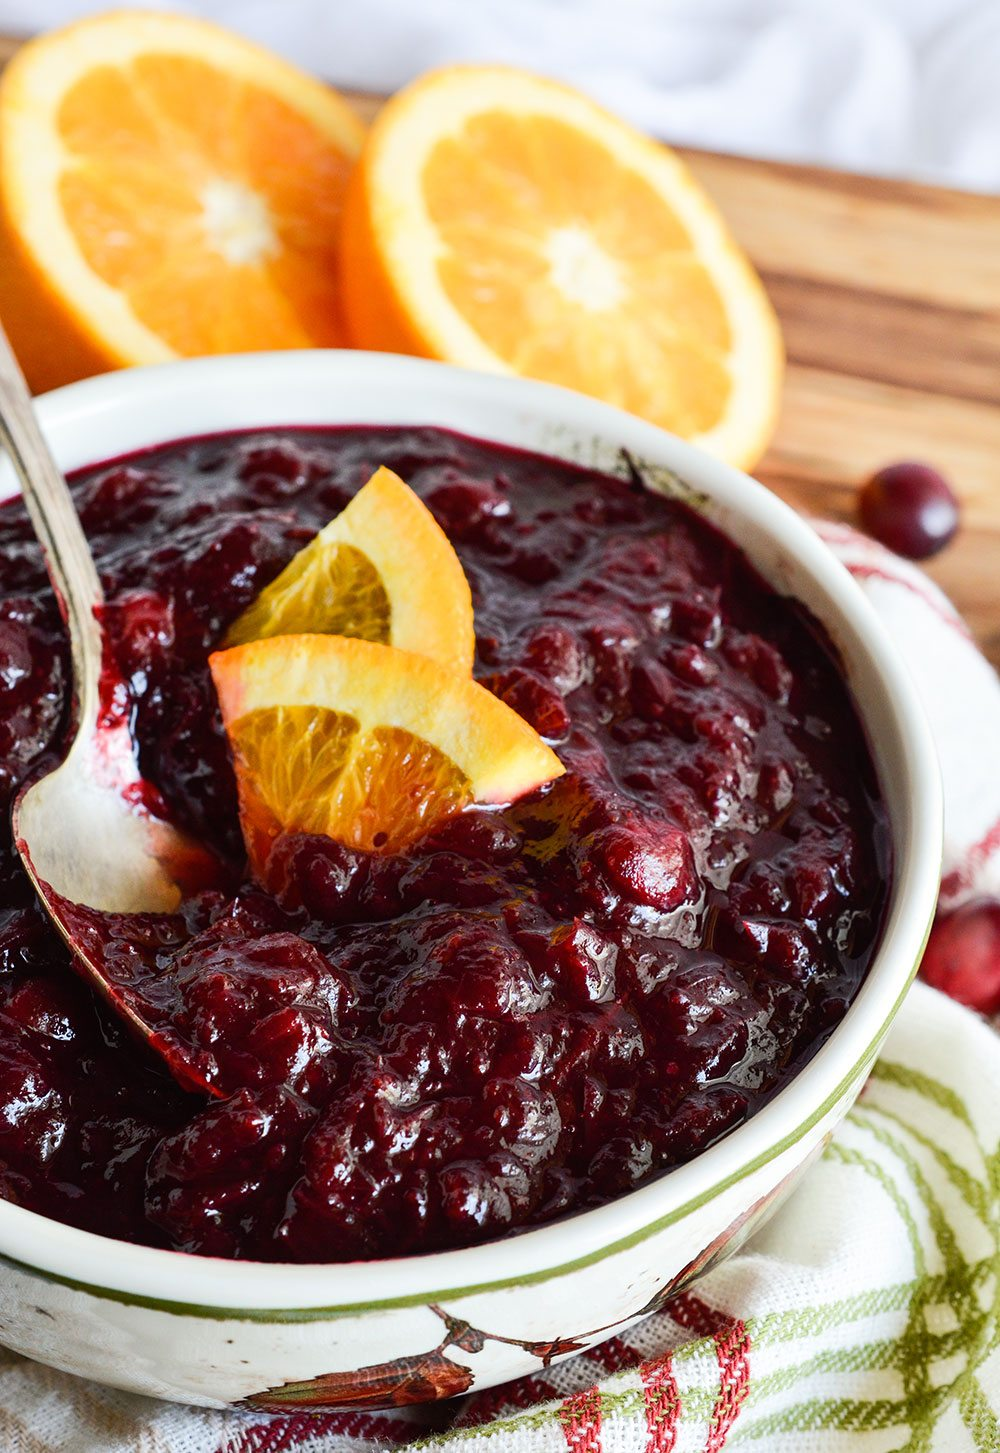 Slow Cooker Cranberry Sauce is an easy, no-fuss way to make this holiday favorite! Just mix ingredients, set your crockpot and move on with your life. Delicious, homemade cranberry sauce will be ready and waiting!